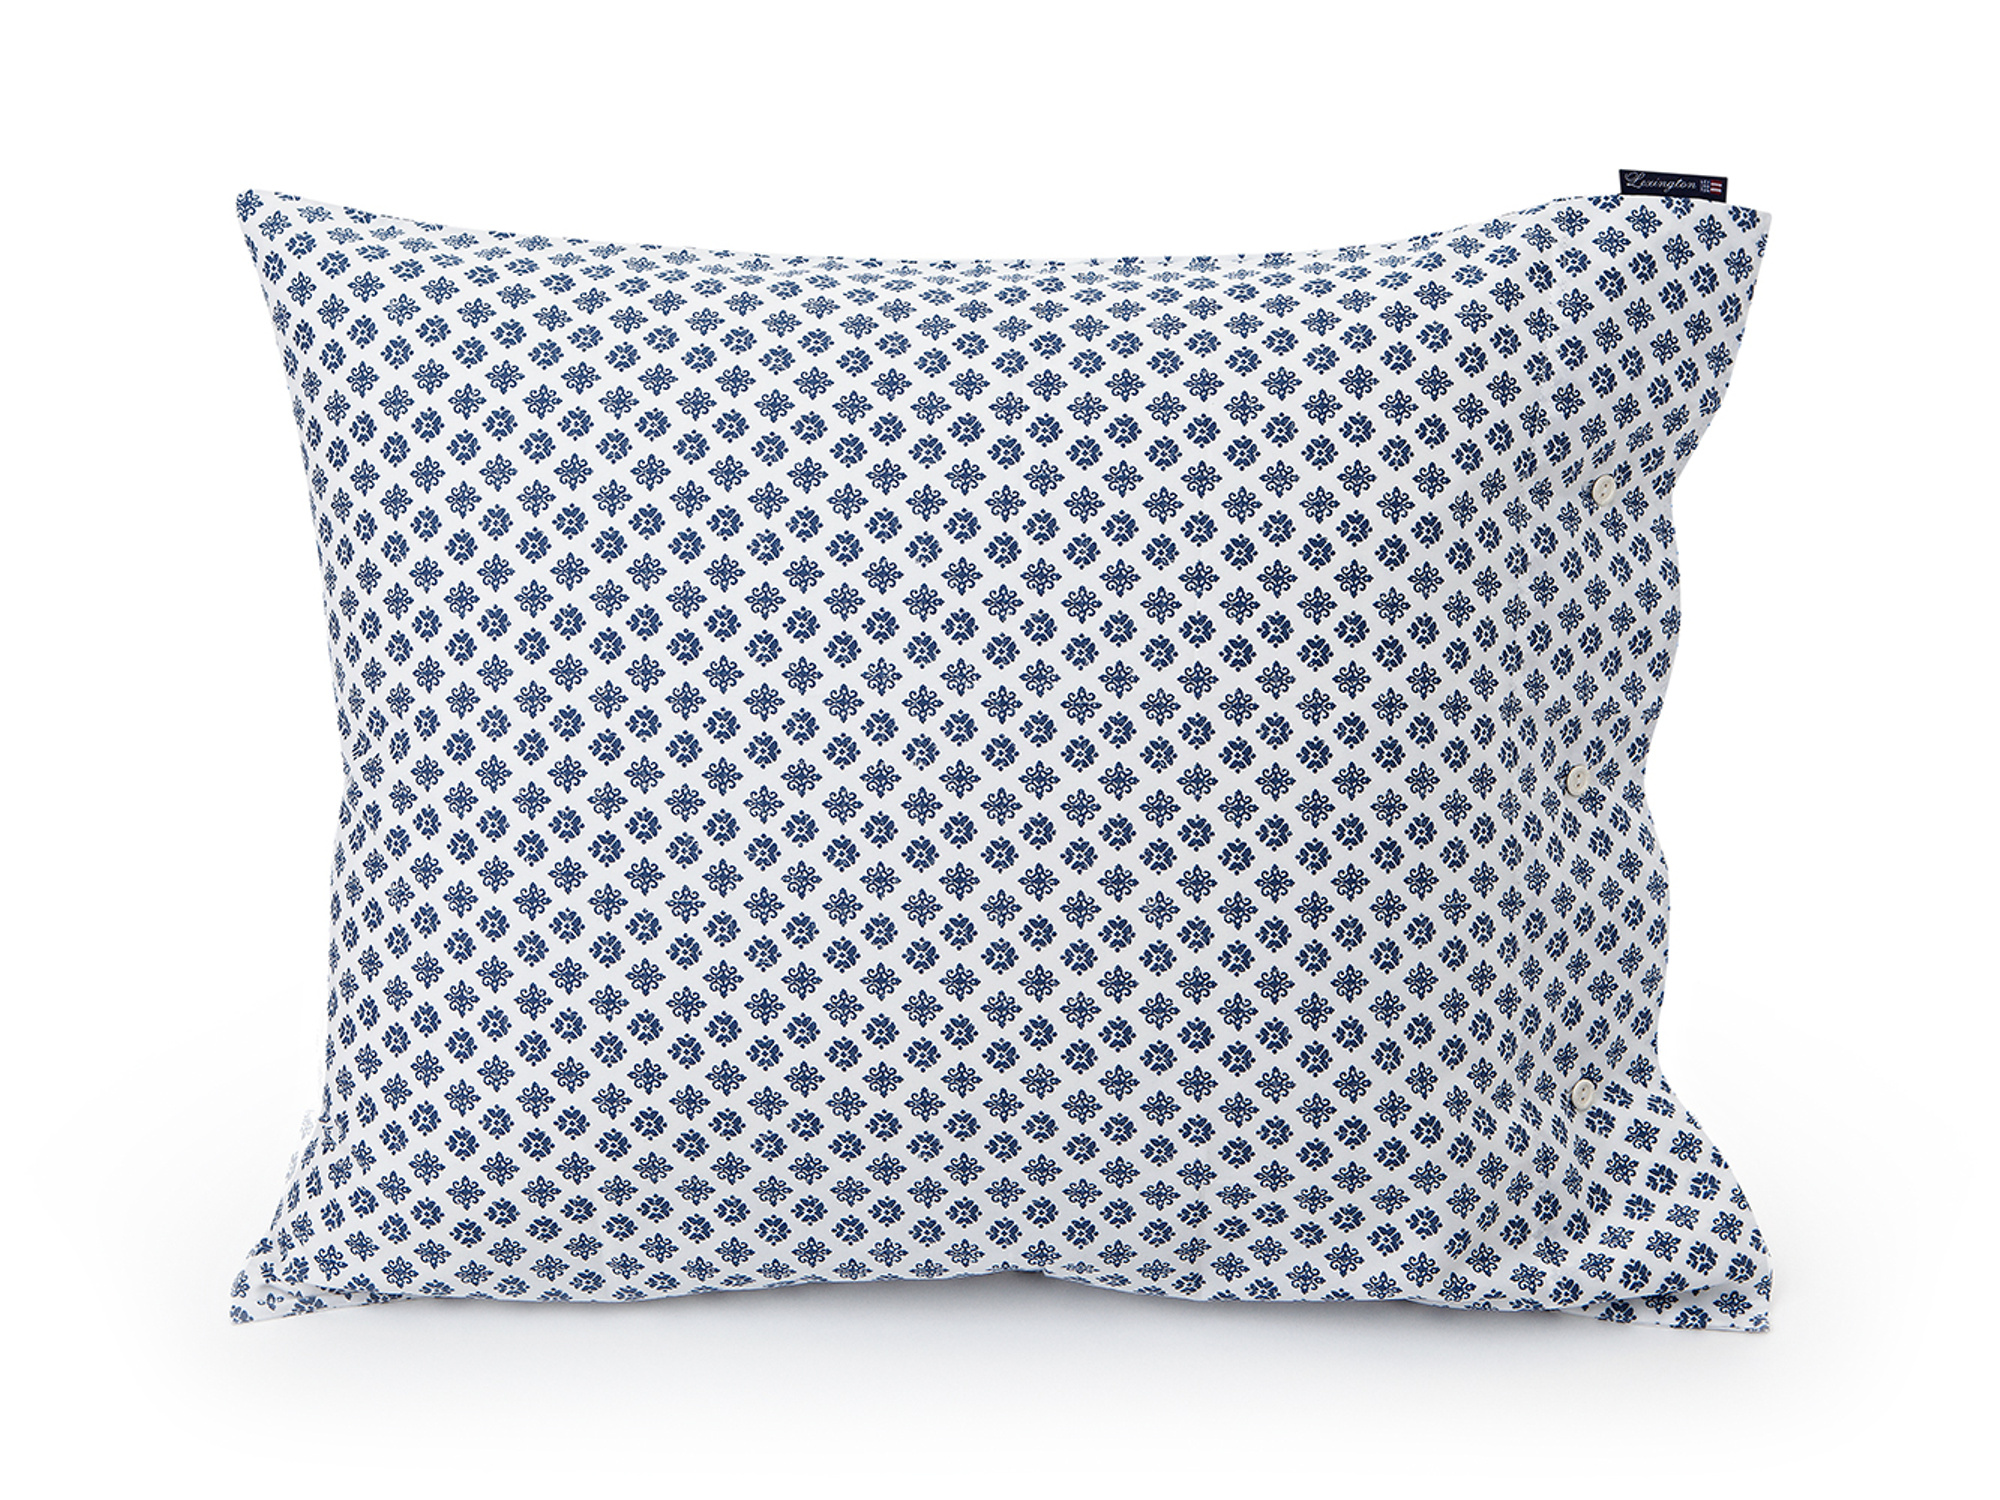 Blue Printed Sateen Pillowcase